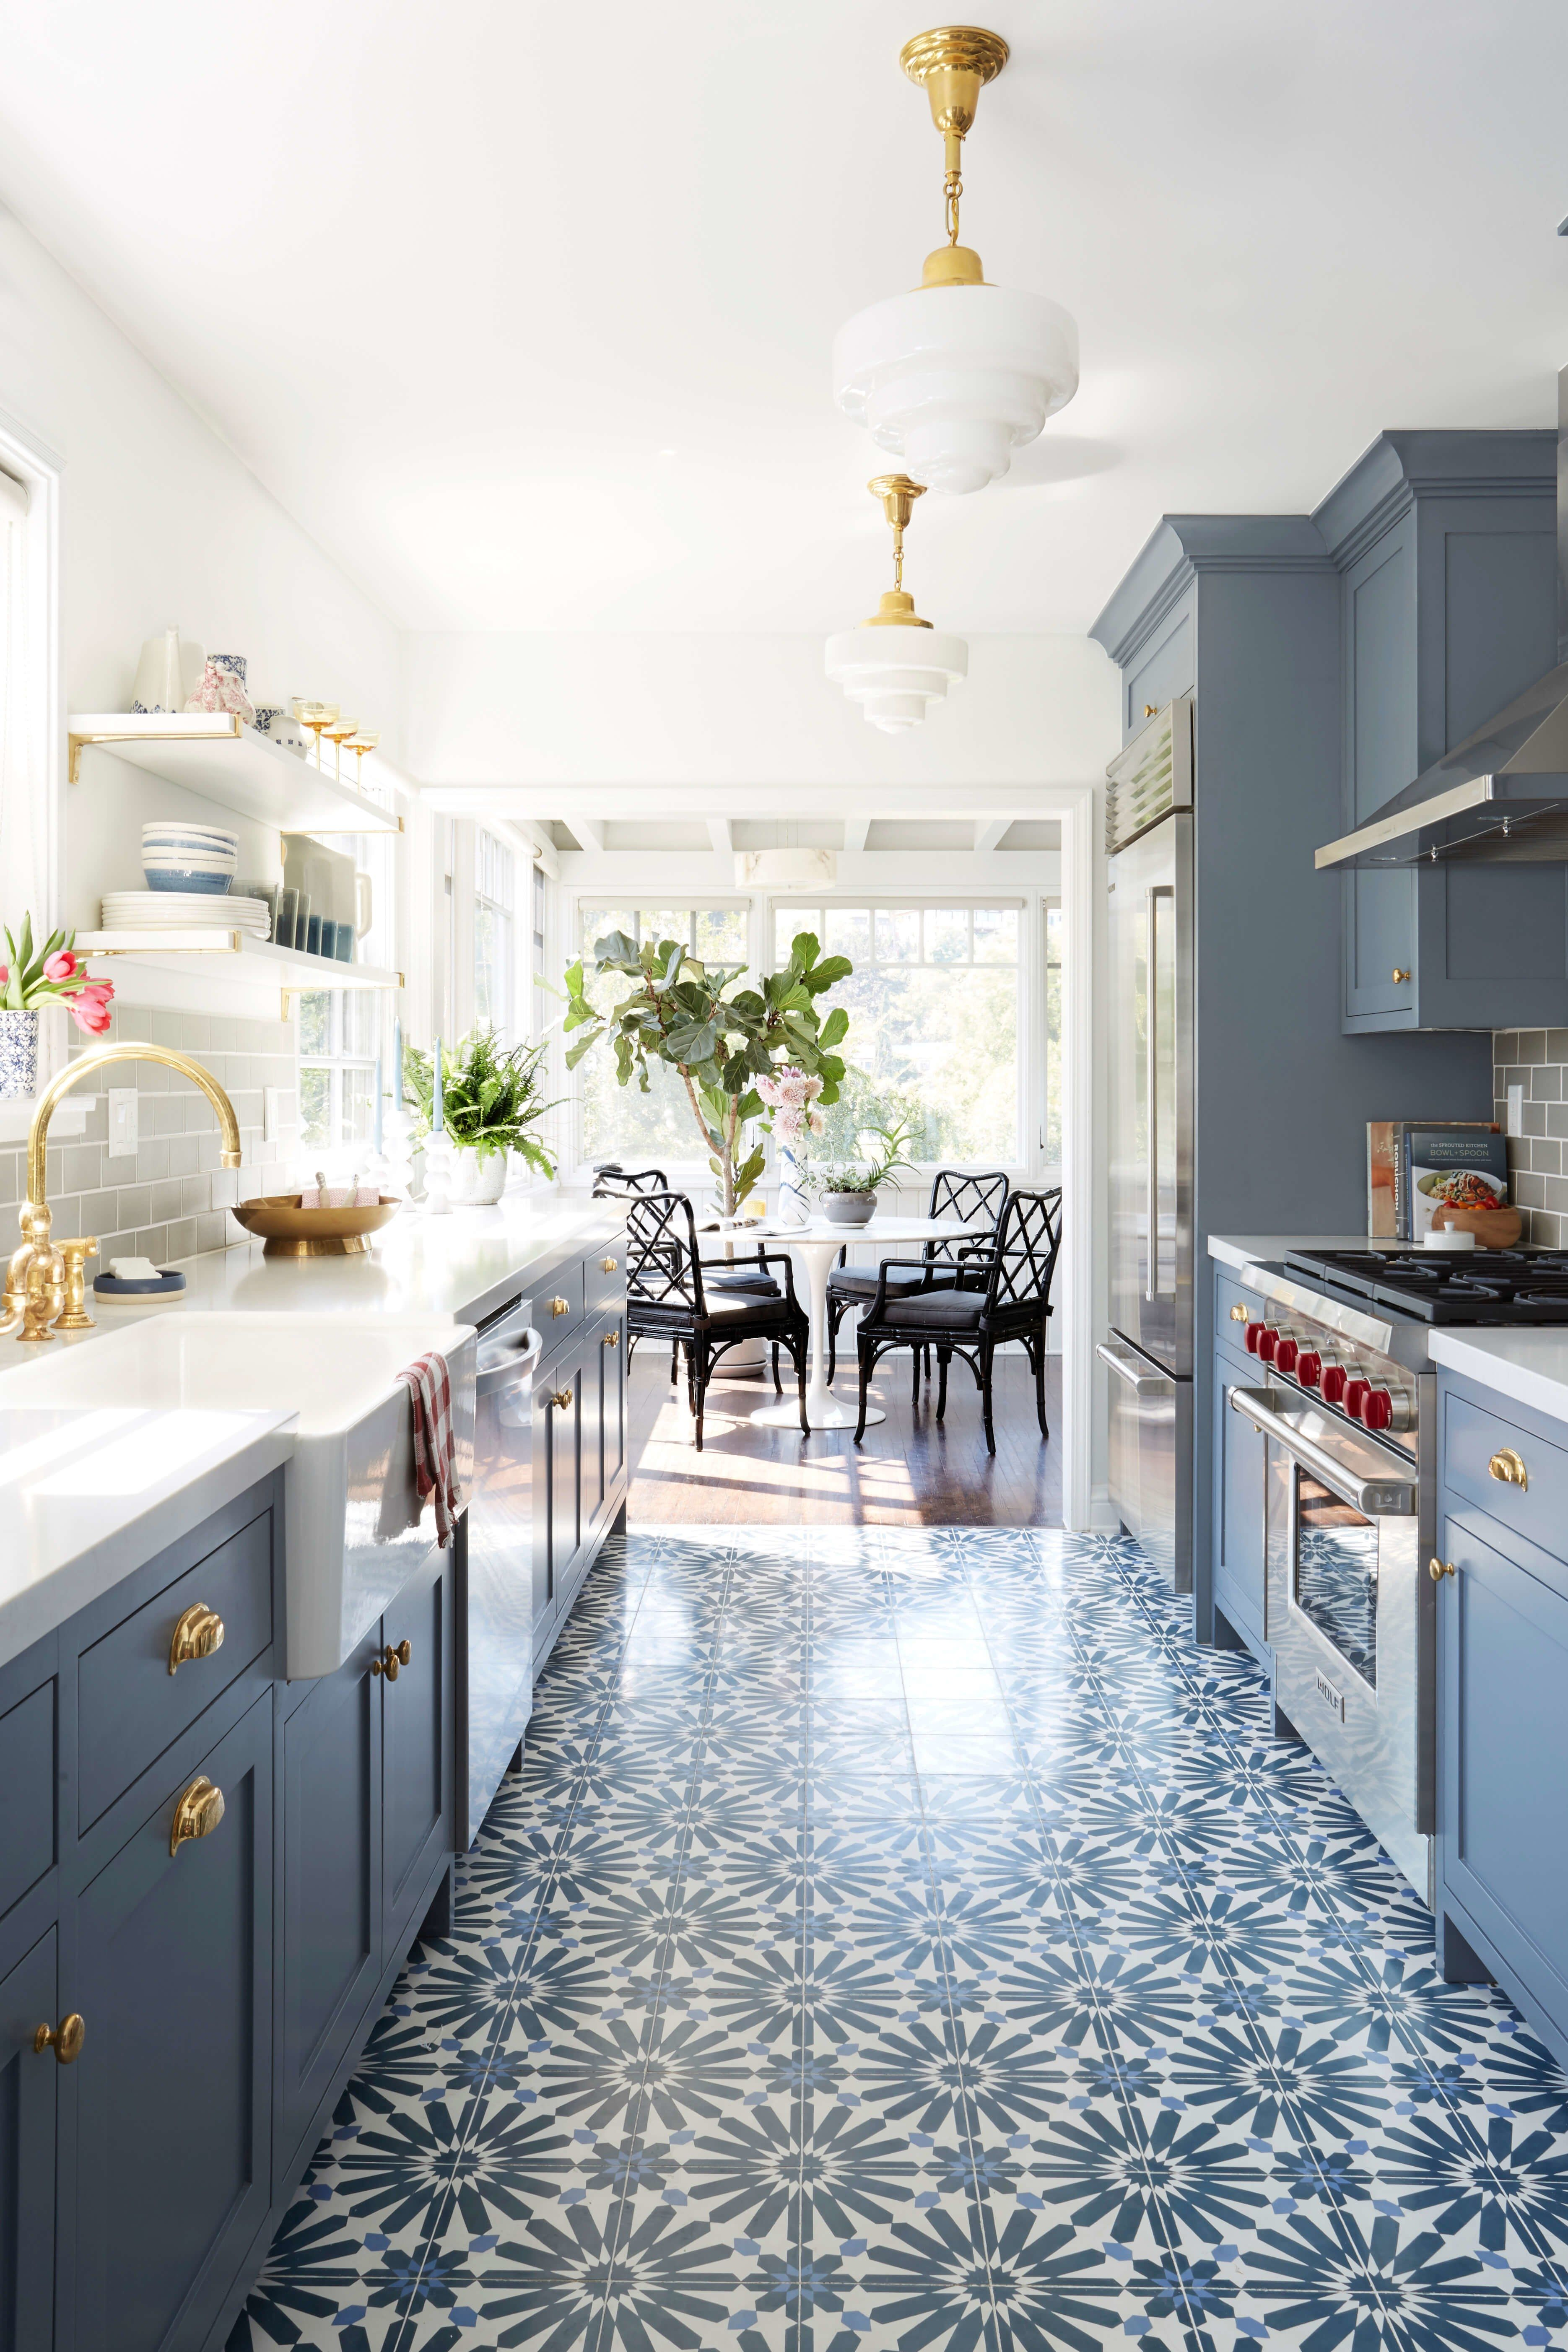 Emily Henderson S Small Space Solutions For Your Kitchen Kitchen Design Small Kitchen Remodel Small Kitchen Design